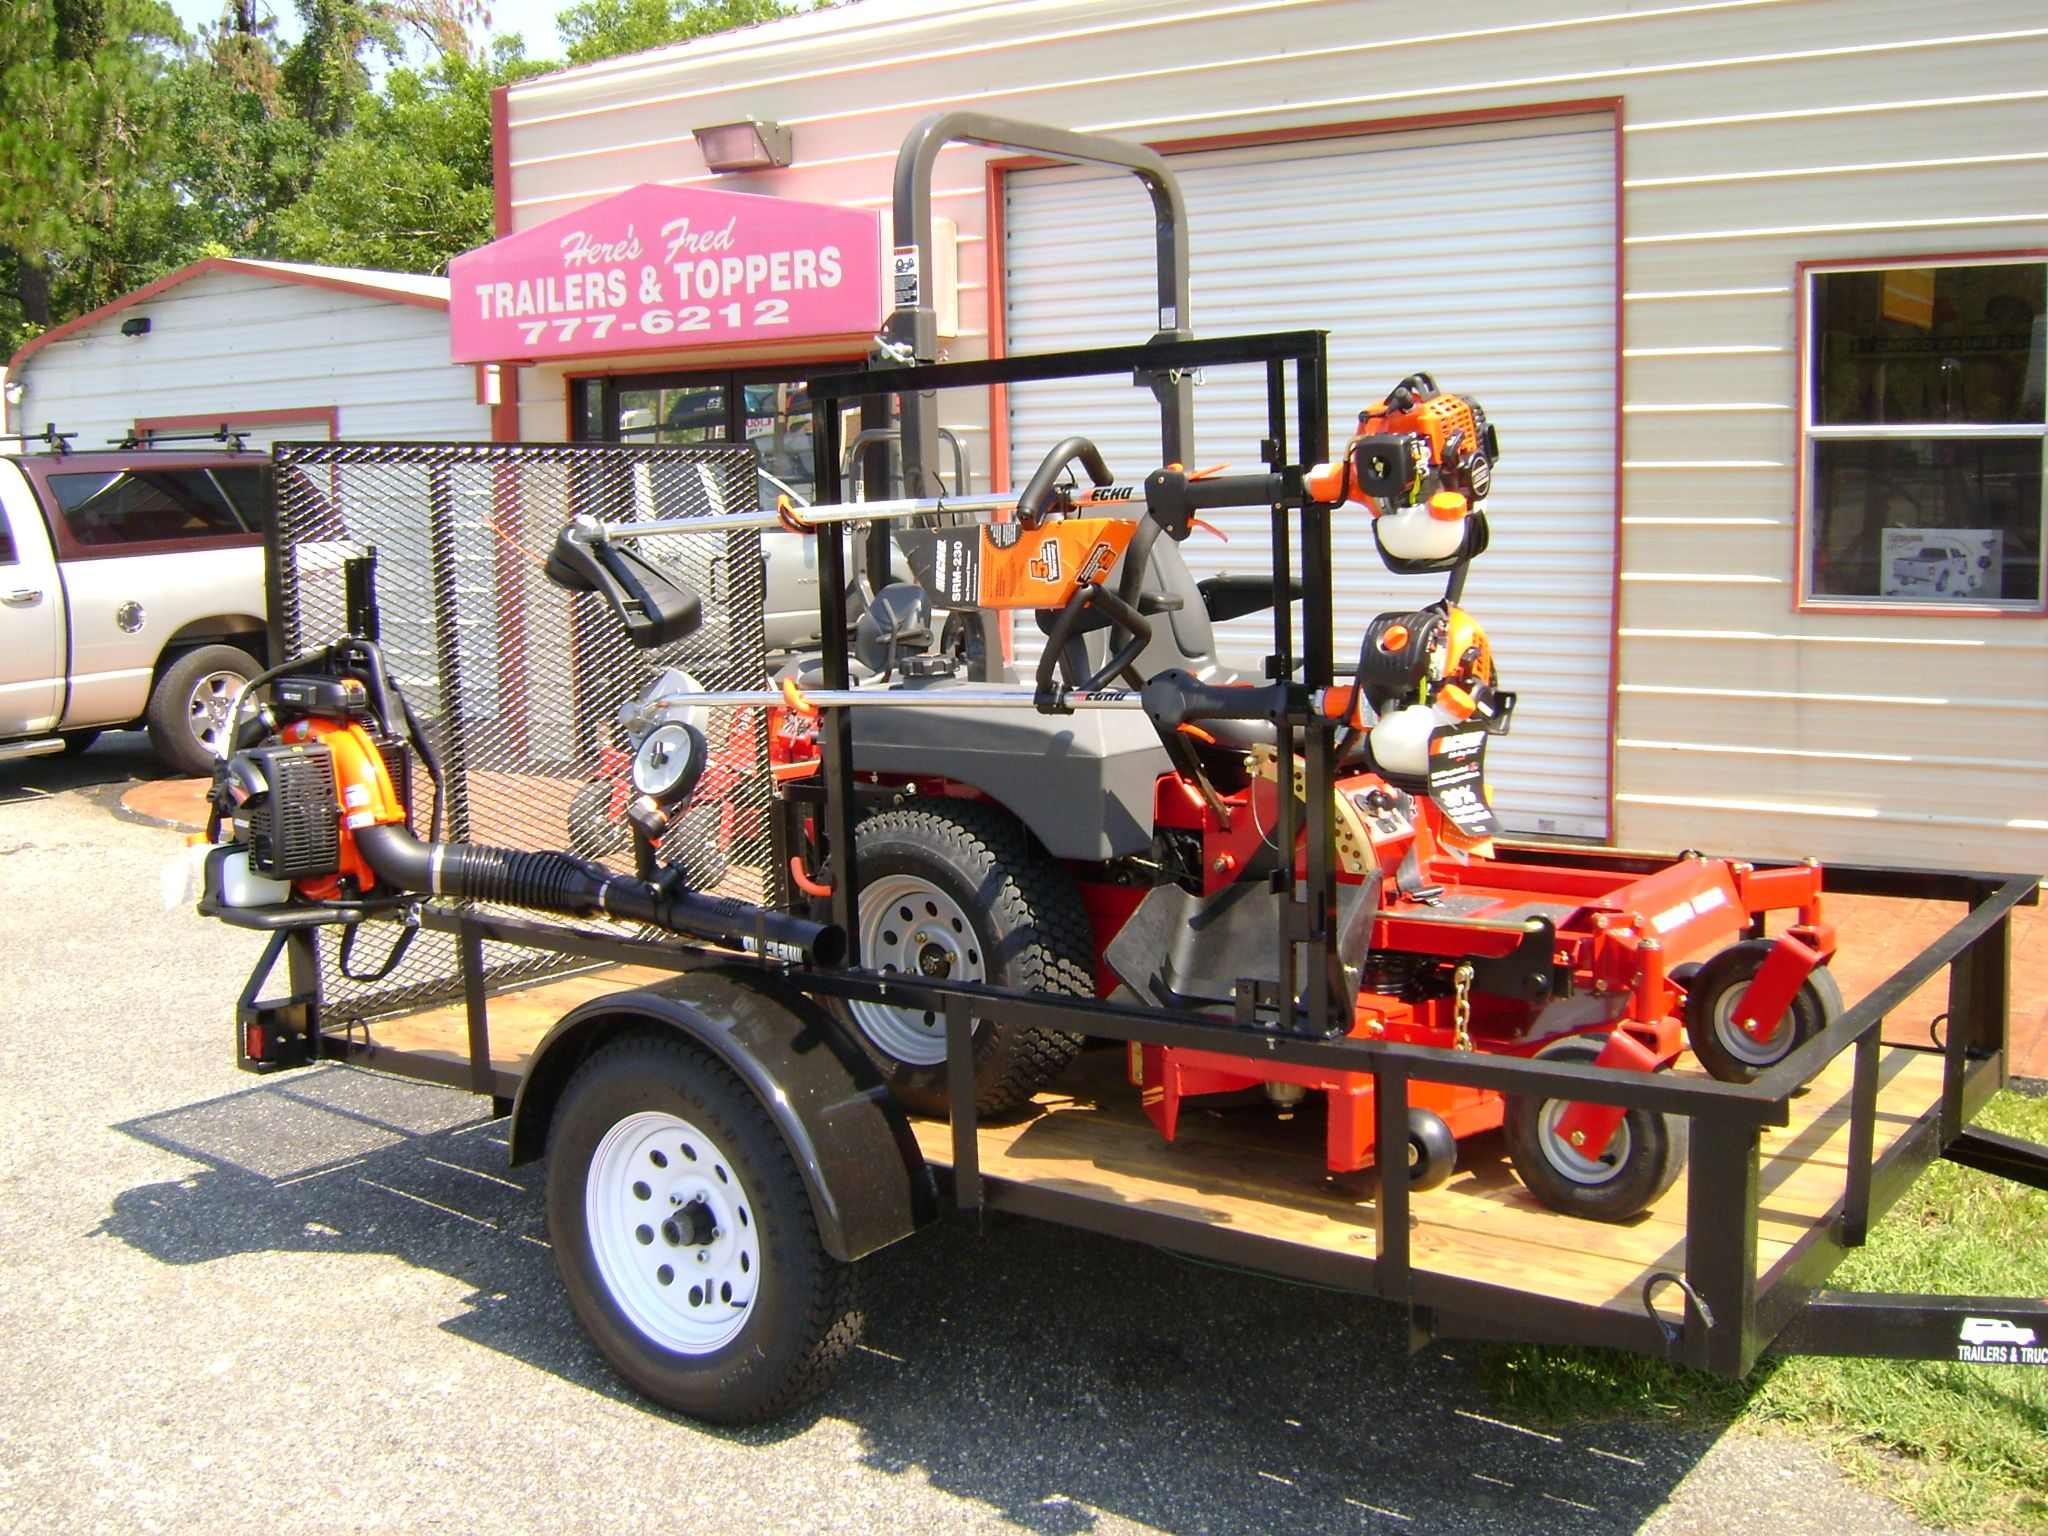 most efficient city mowing truck lawnsite com lawn care our utility trailers are perfect for hauling lawn equipment utilitytrailer trailer